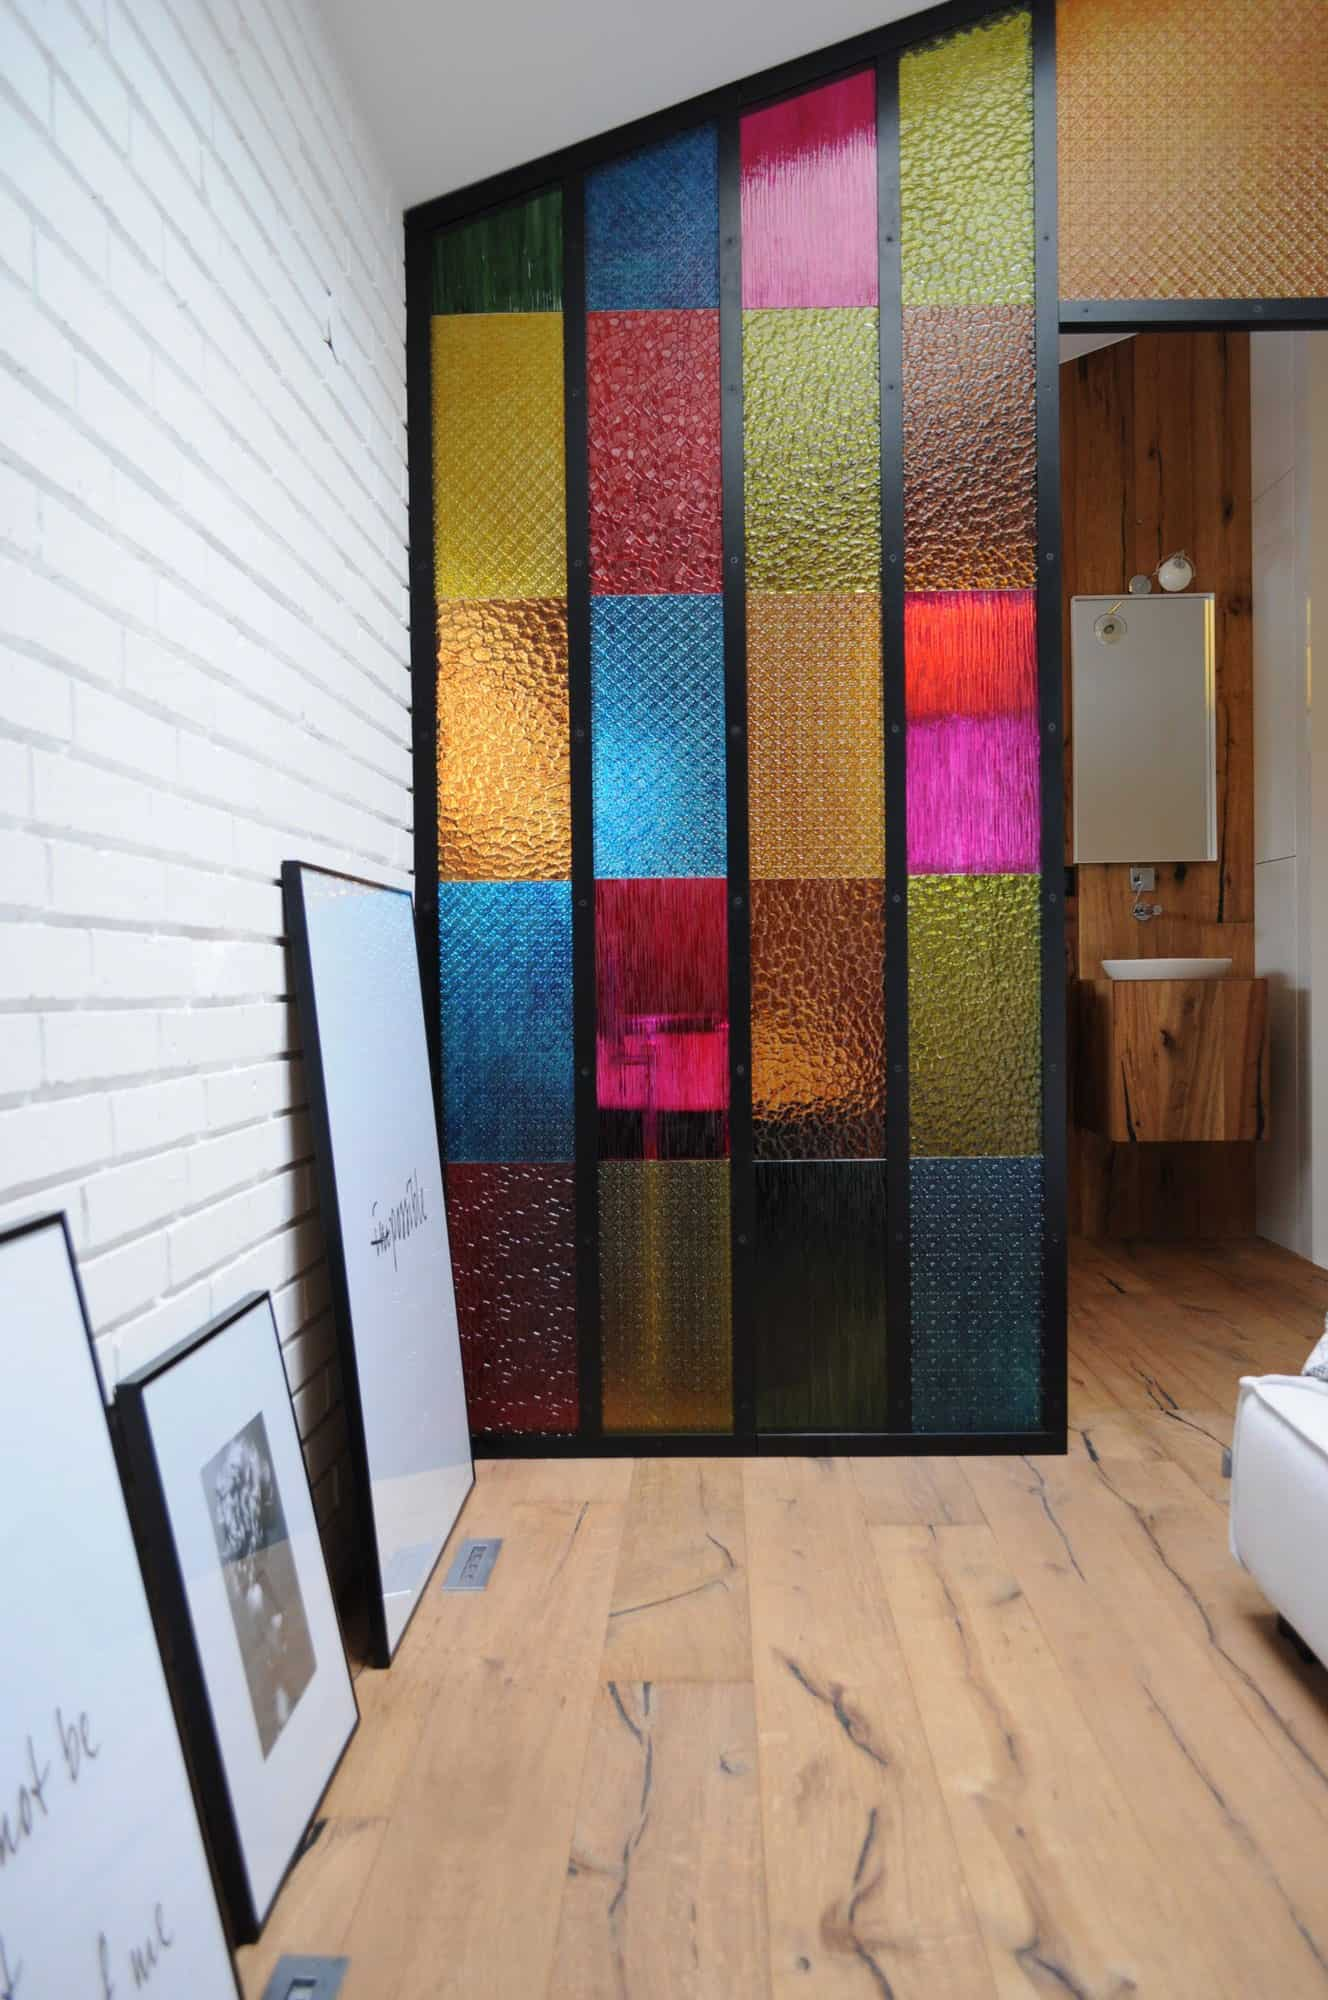 Plastic sheets for bathroom walls - 5 Bedroom Bathroom Partition In Colored Plastic Panels Diy Idea